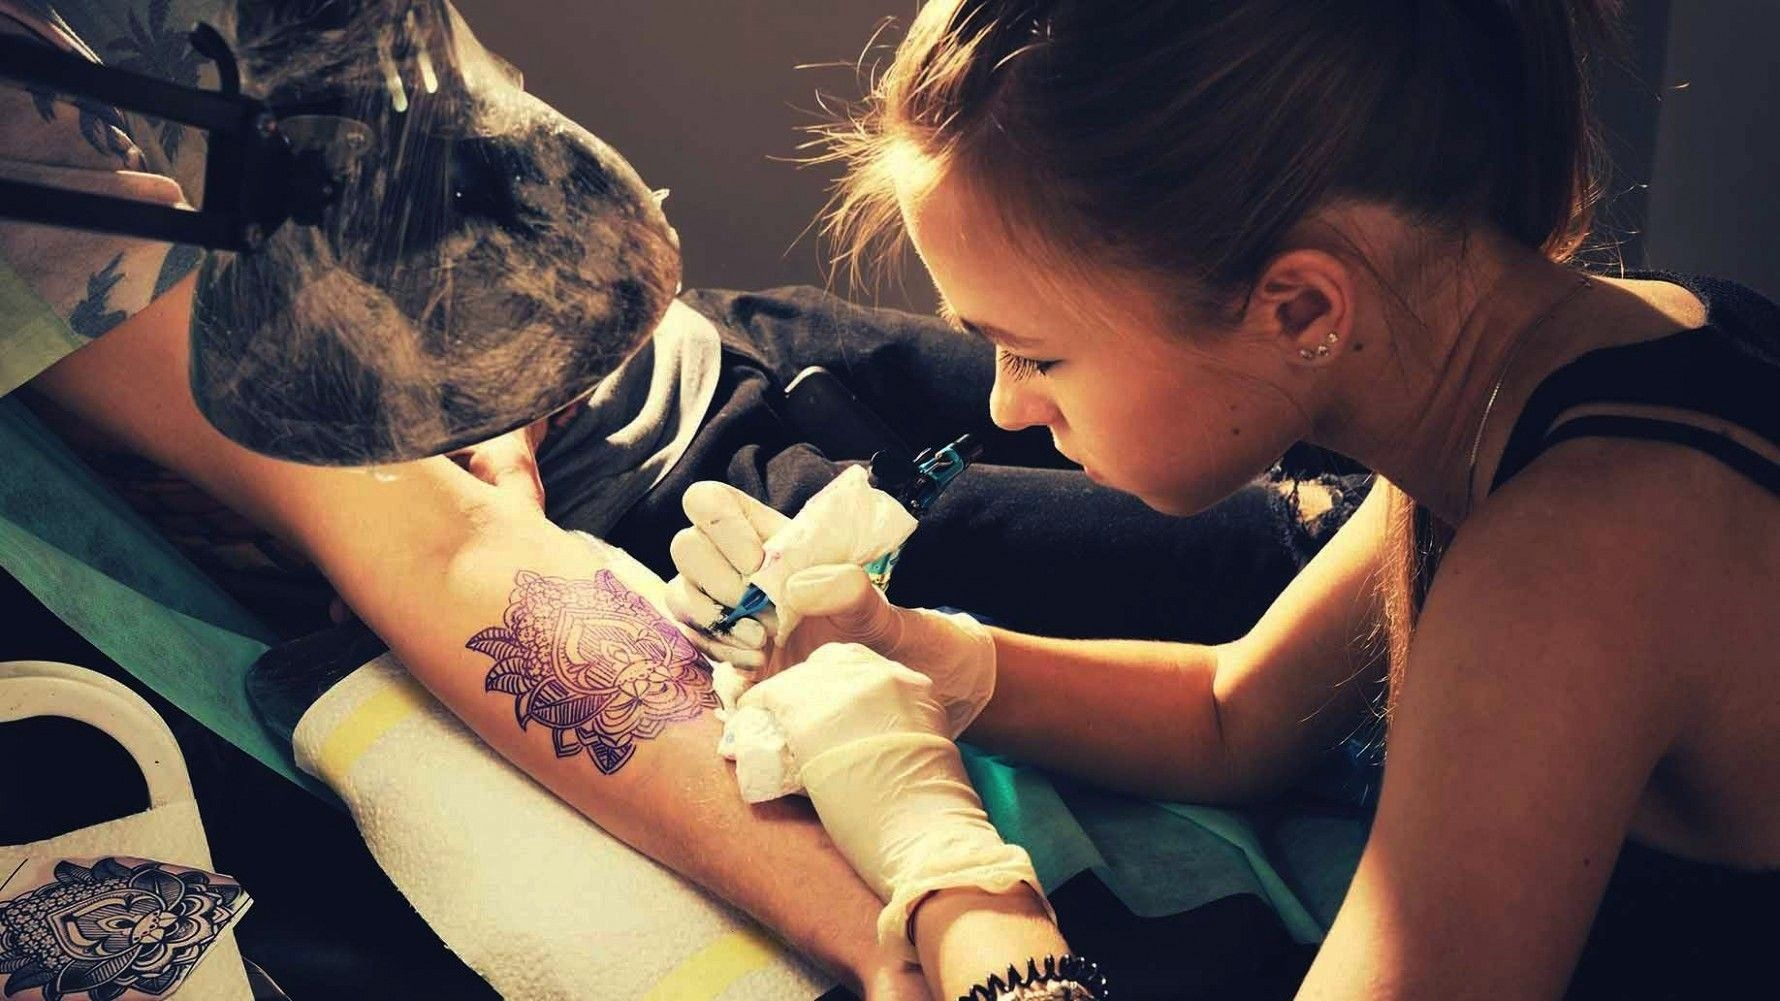 How Much Does A Small Tattoo Cost Can Improve Your Business 16 Ways How Much Does A Small Tattoo Cost Can Improve Your Business 16 Ways How Much Does A Small Tattoo Cost...